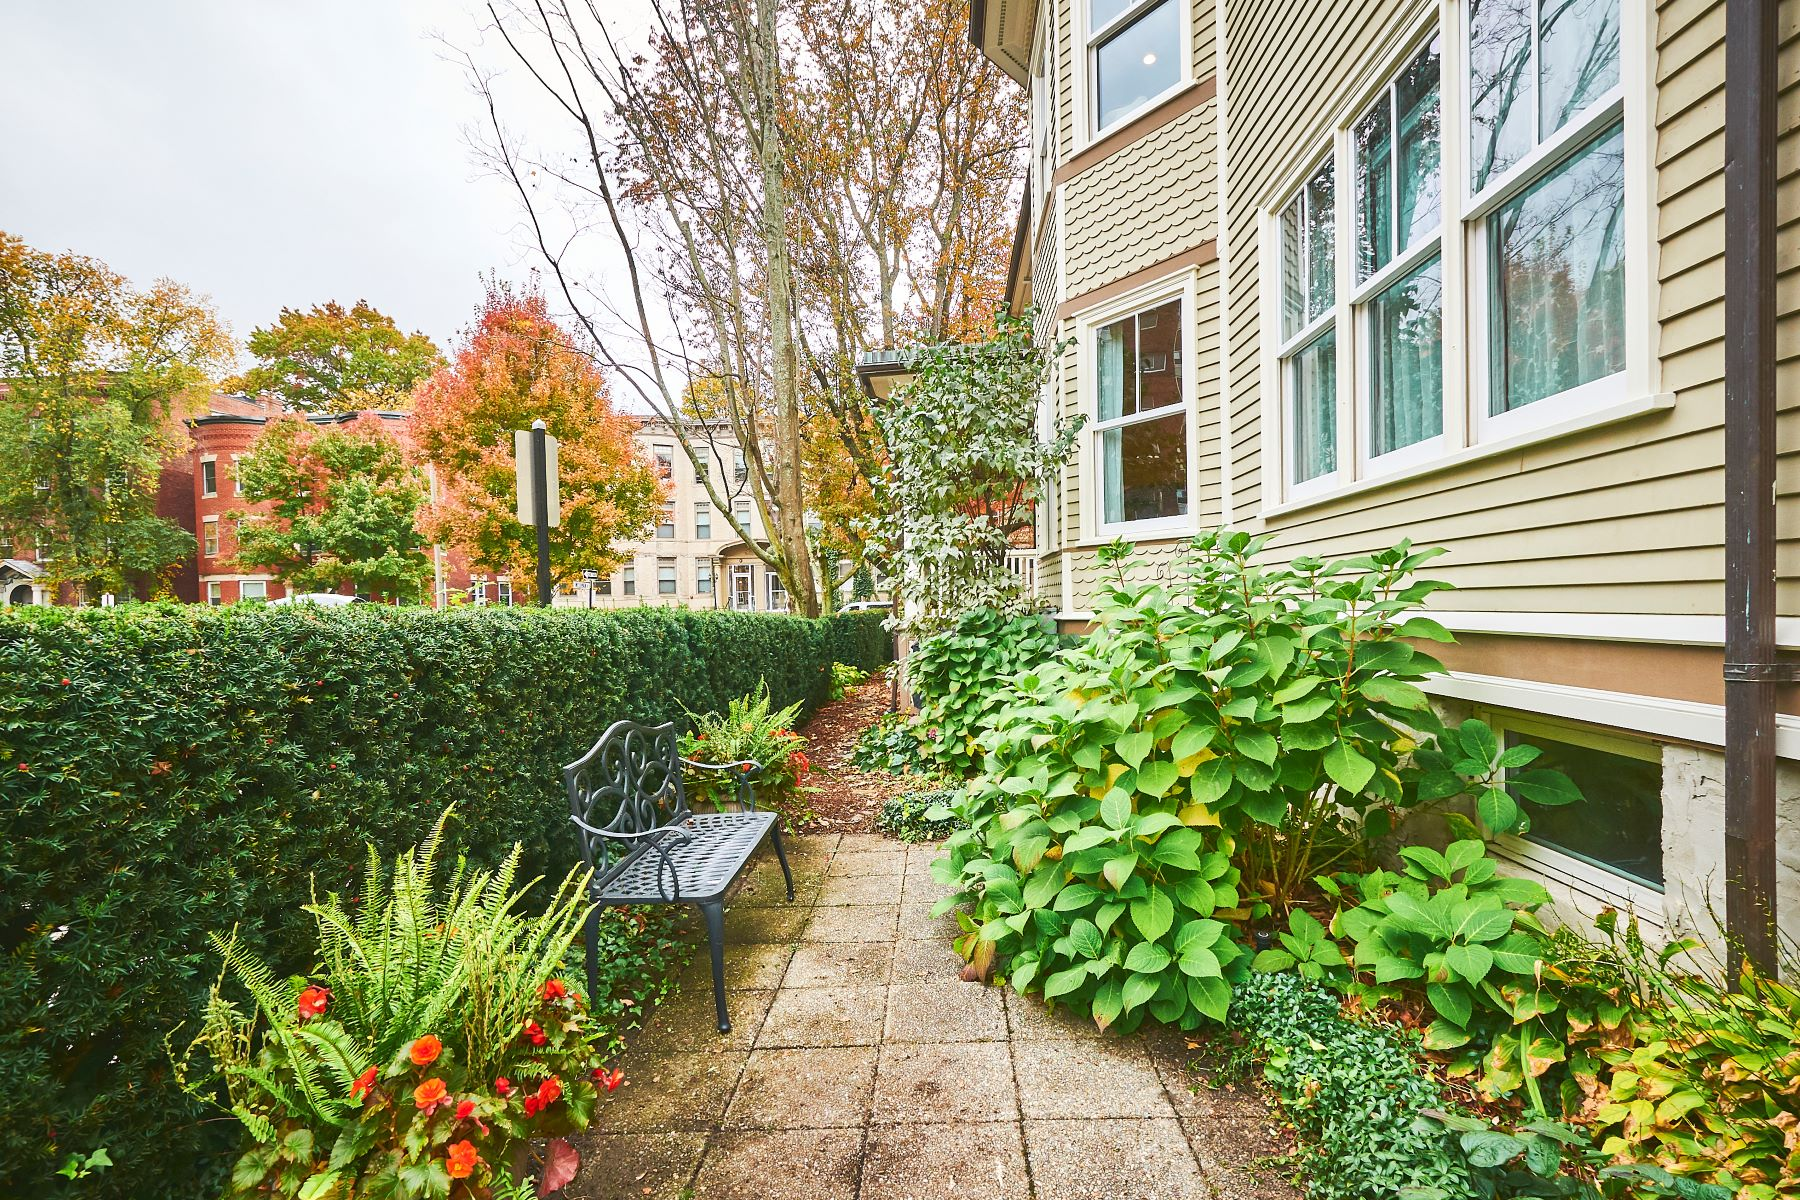 Single Family Homes for Sale at 35 Winchester St Brookline, Massachusetts 02446 United States